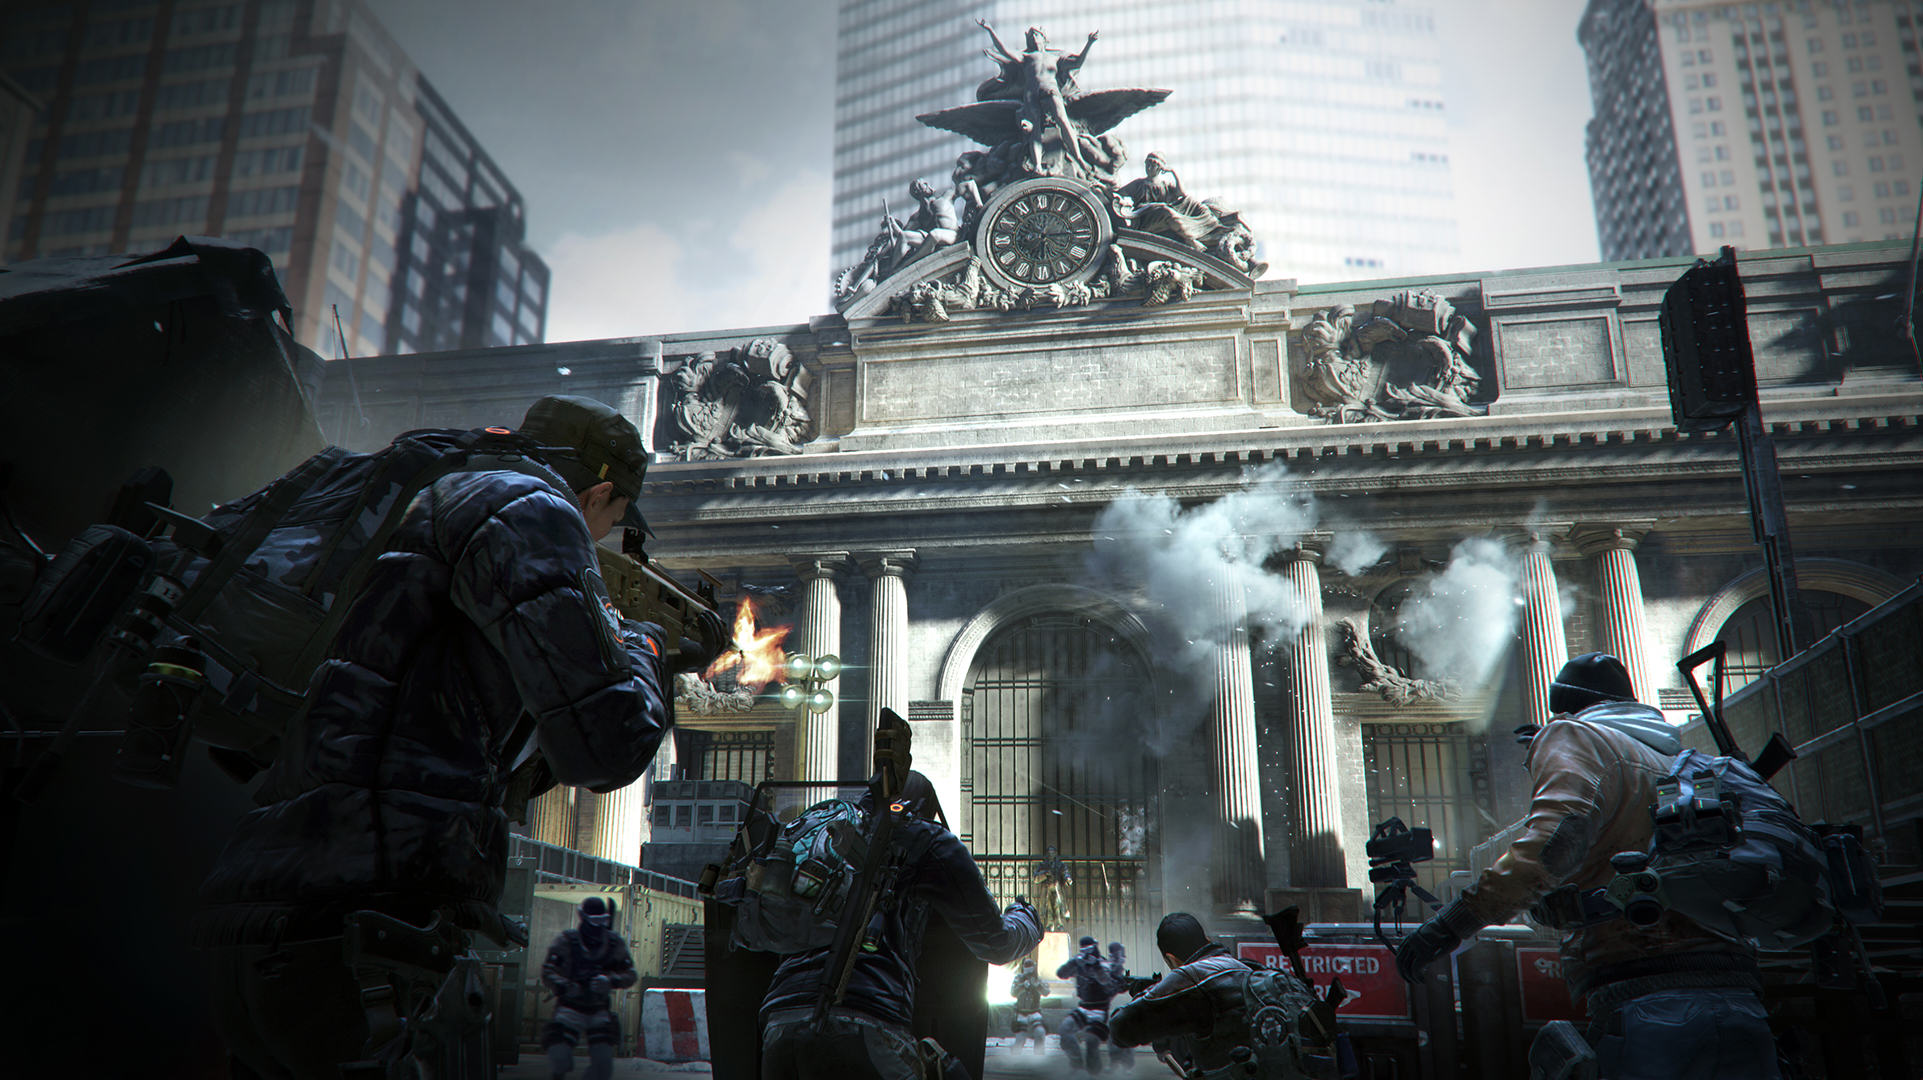 TCTD 1601 web screenshot grand central We Had An Exclusive Look At The Division Ahead Of Release Day